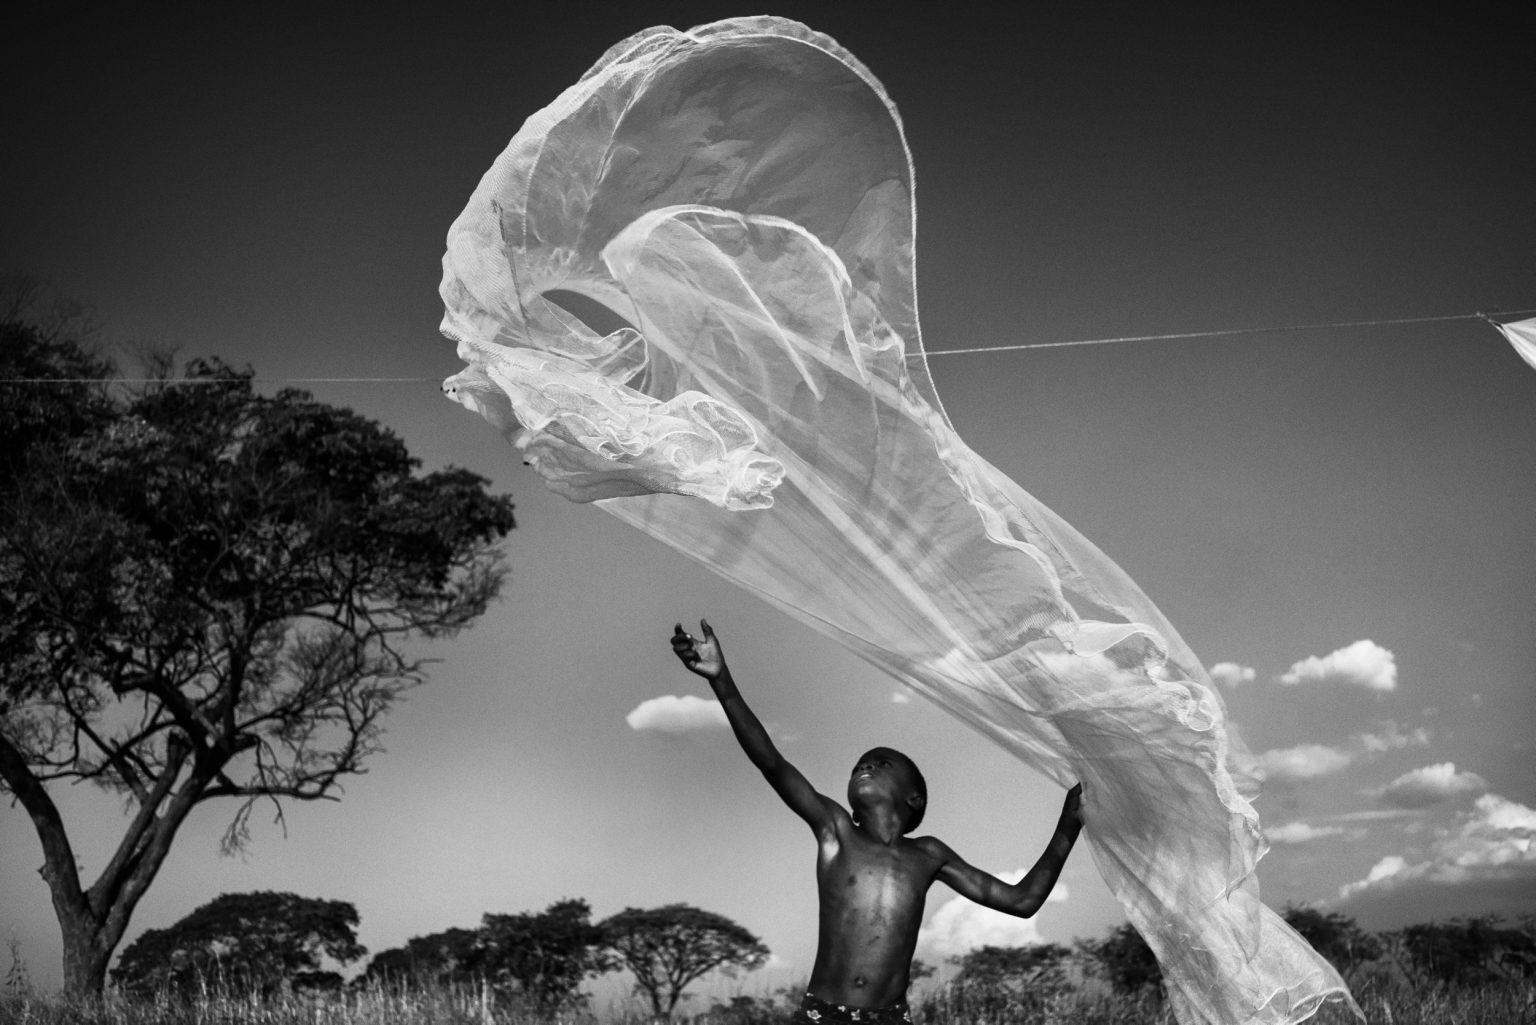 Mthunzi Centre, a socio-educational project and a residential reception centre. Daily activities in the comunity. Joseph hanging the mosquito net to dry.  Lusaka, Zambia, 2019